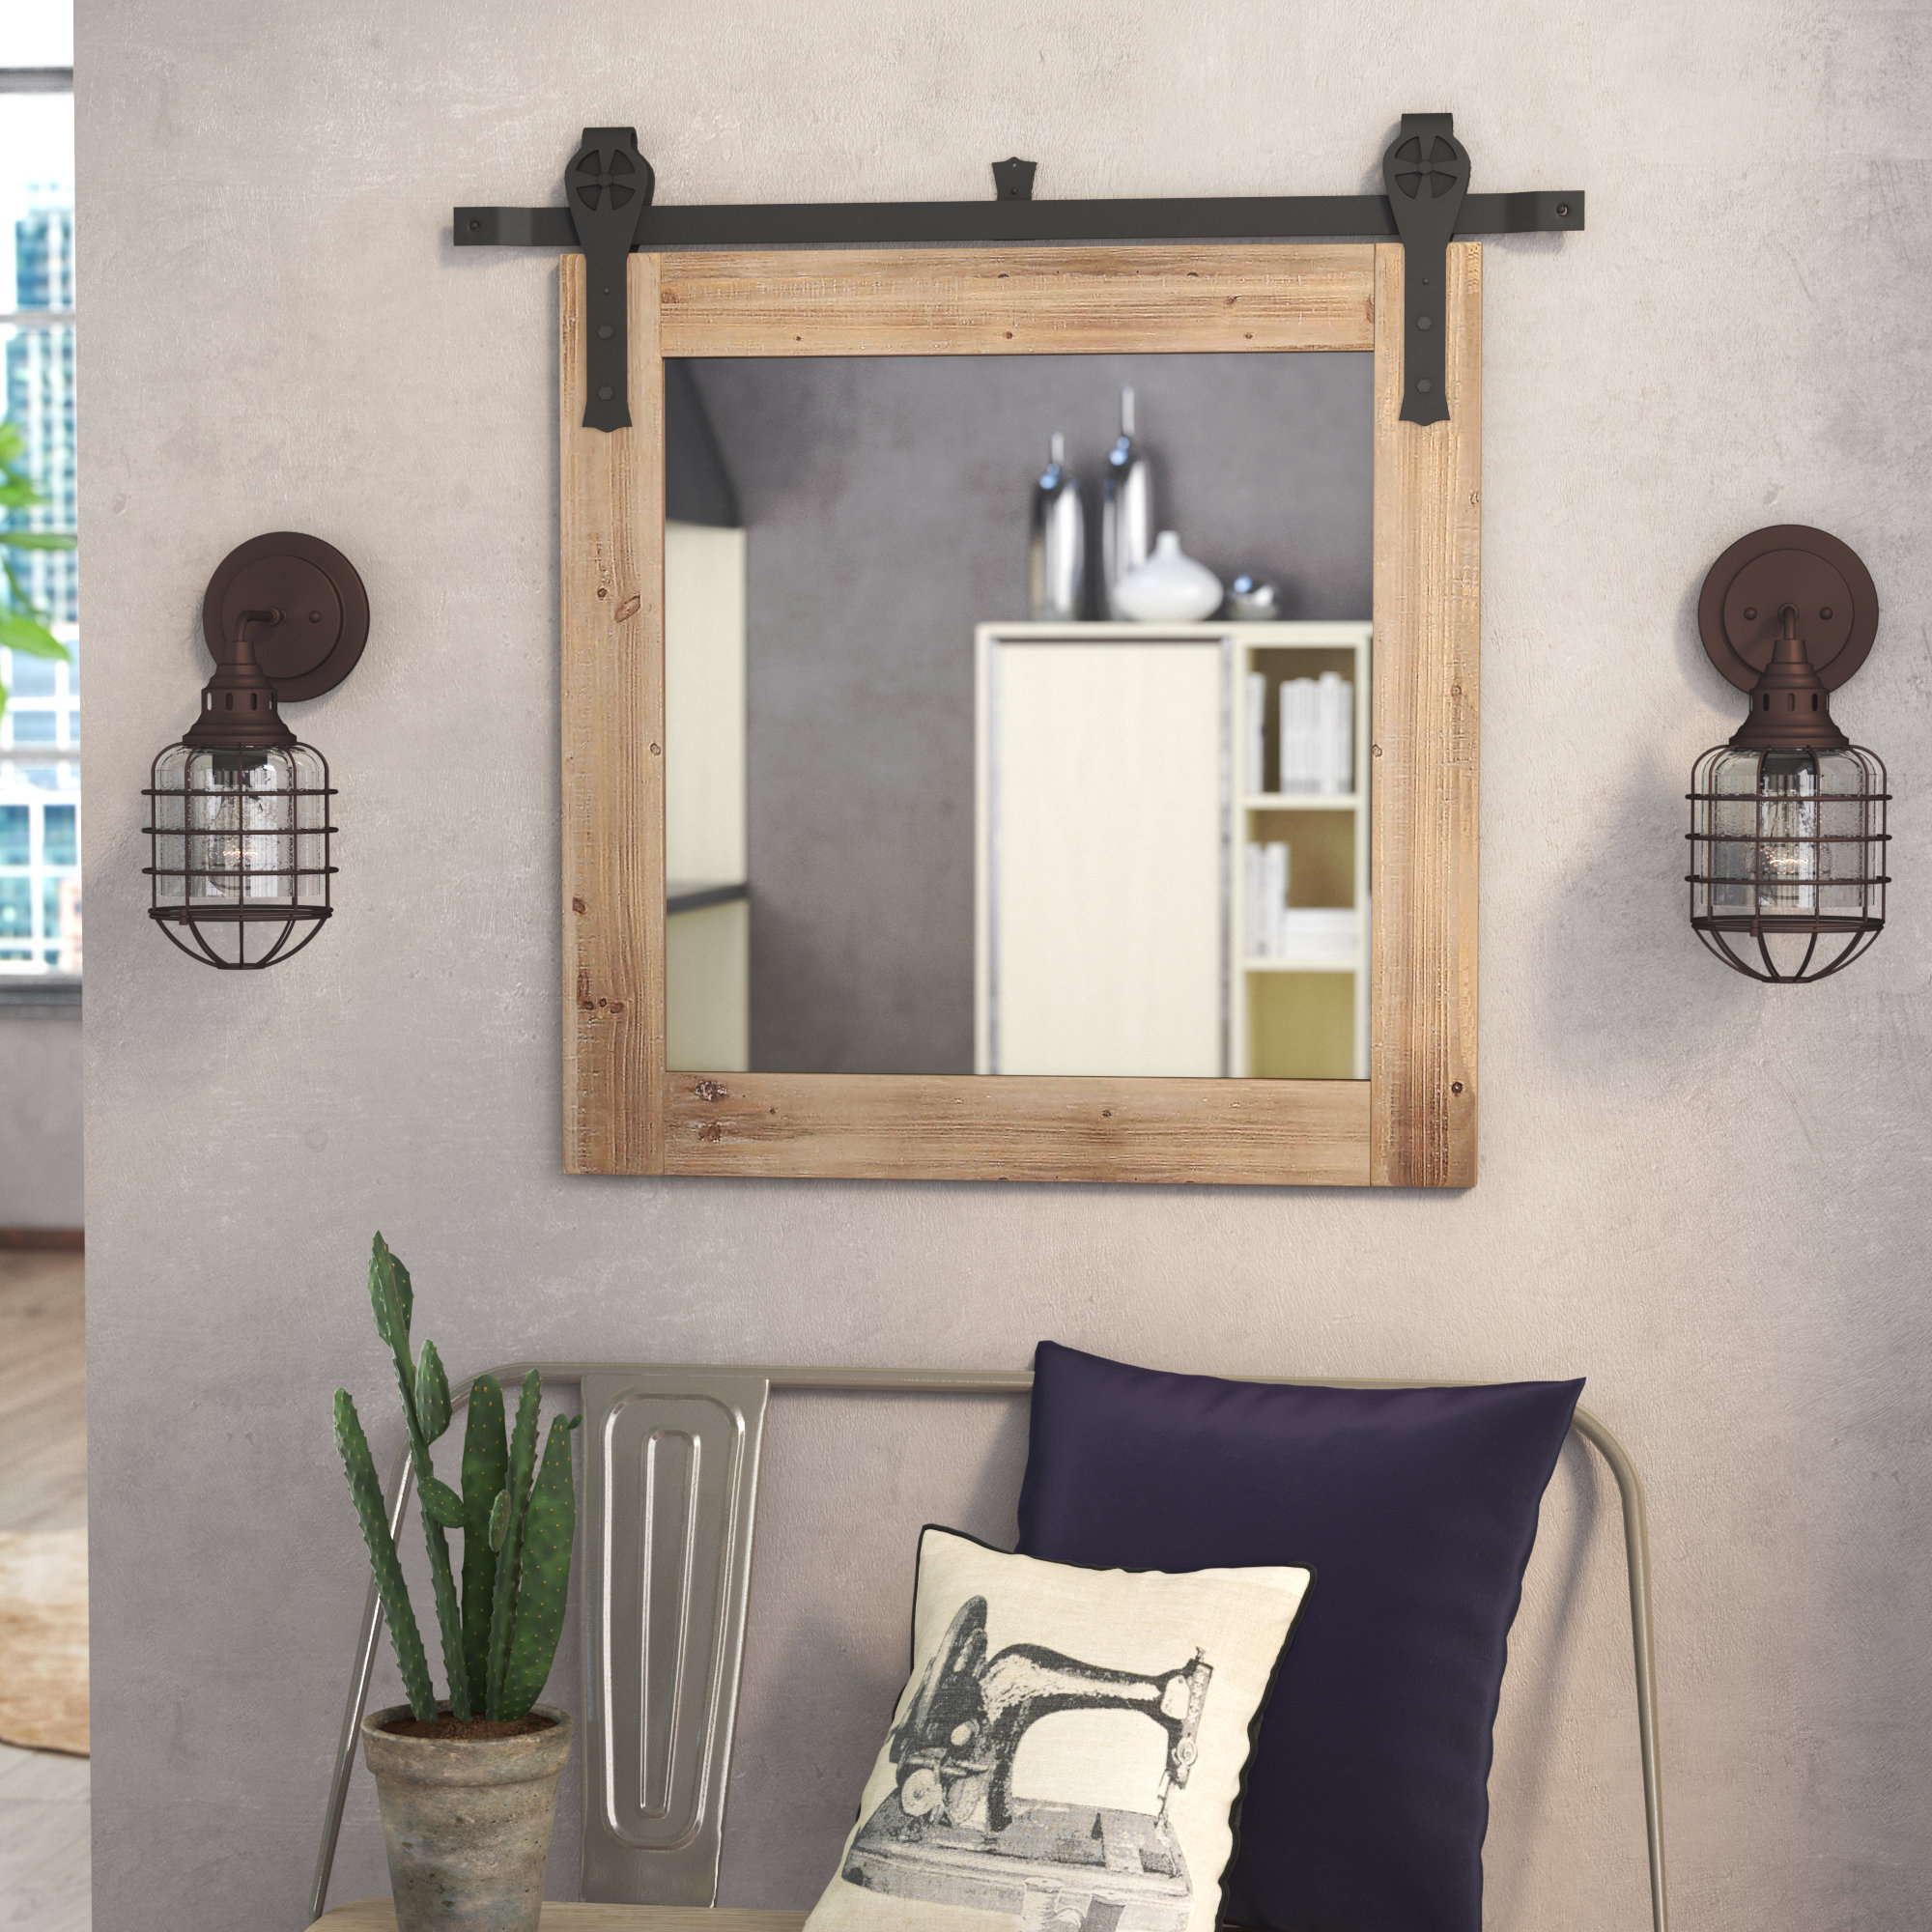 Current Hilde Traditional Beveled Bathroom Mirrors With Berdy Bathroom/vanity Mirror (View 12 of 20)